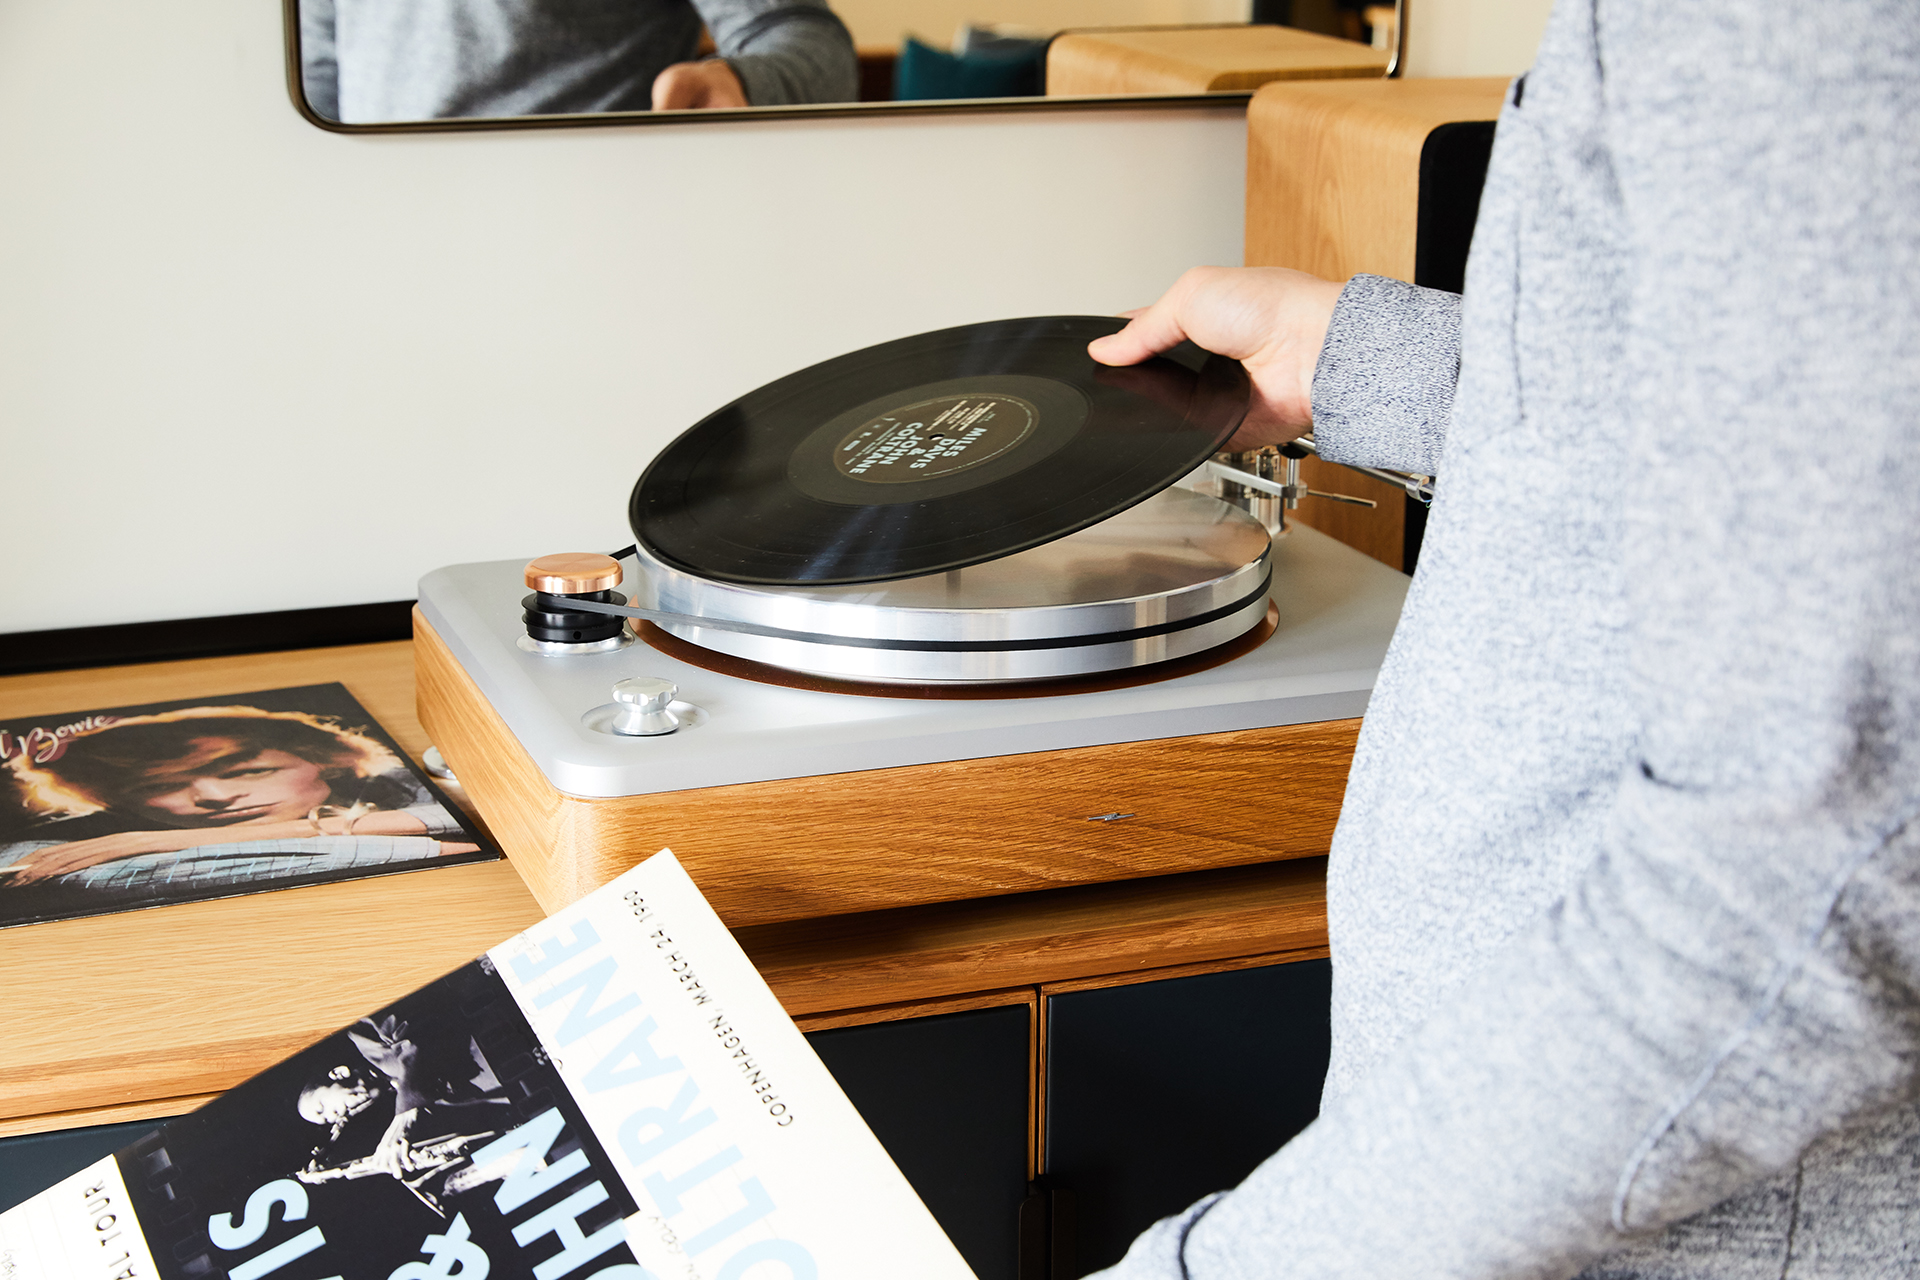 The Shinola Runwell turntable with its retail tag of $2,500 is the highlight of the Bedrock suite | Shinola Hotel| Gachot Studio | STIR